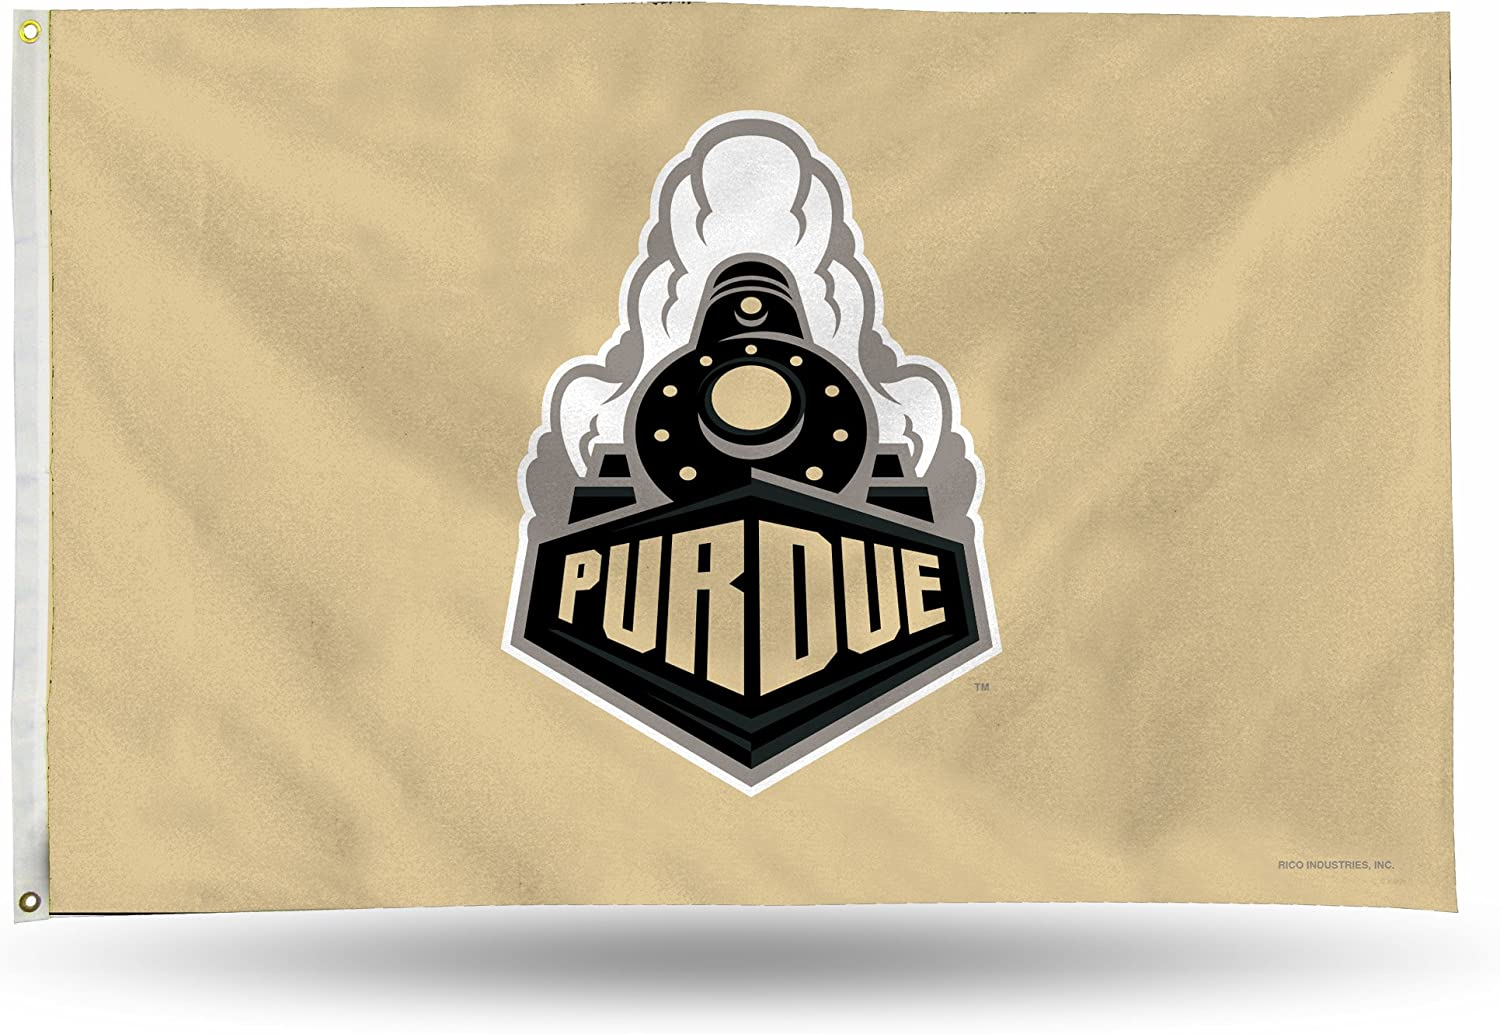 Rico Industries NCAA Purdue Boilermakers 3-Foot by 5-Foot Single Sided Banner Flag with Grommets